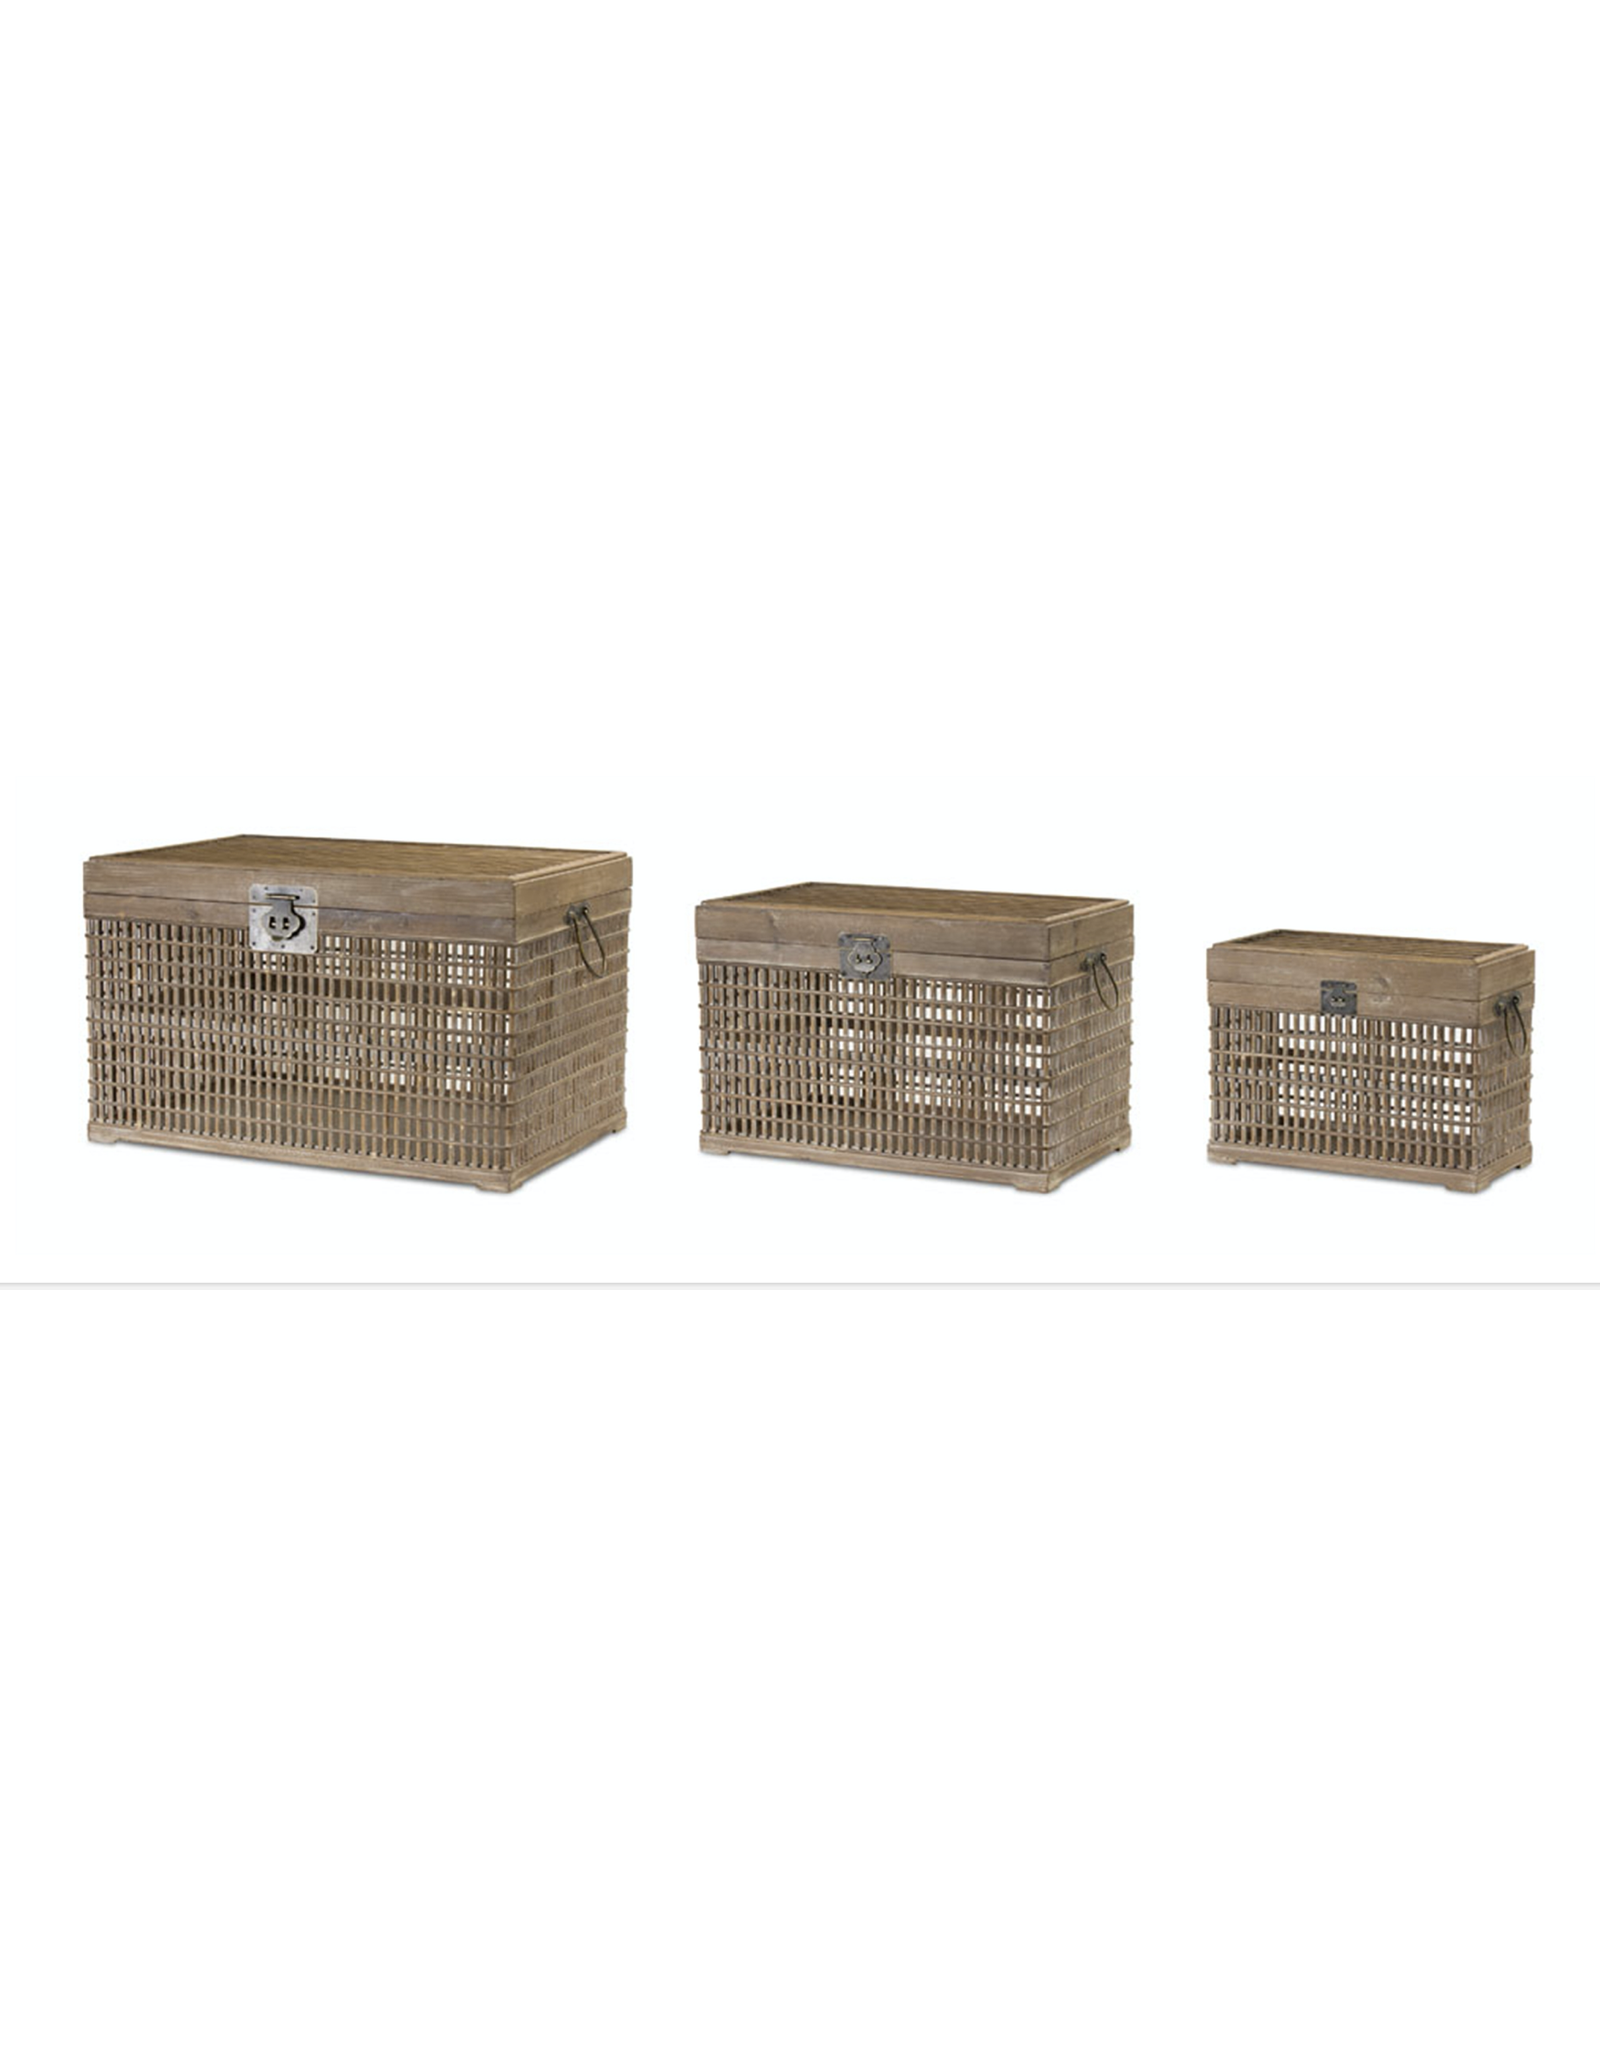 Melrose Bamboo & Wood Crate Small